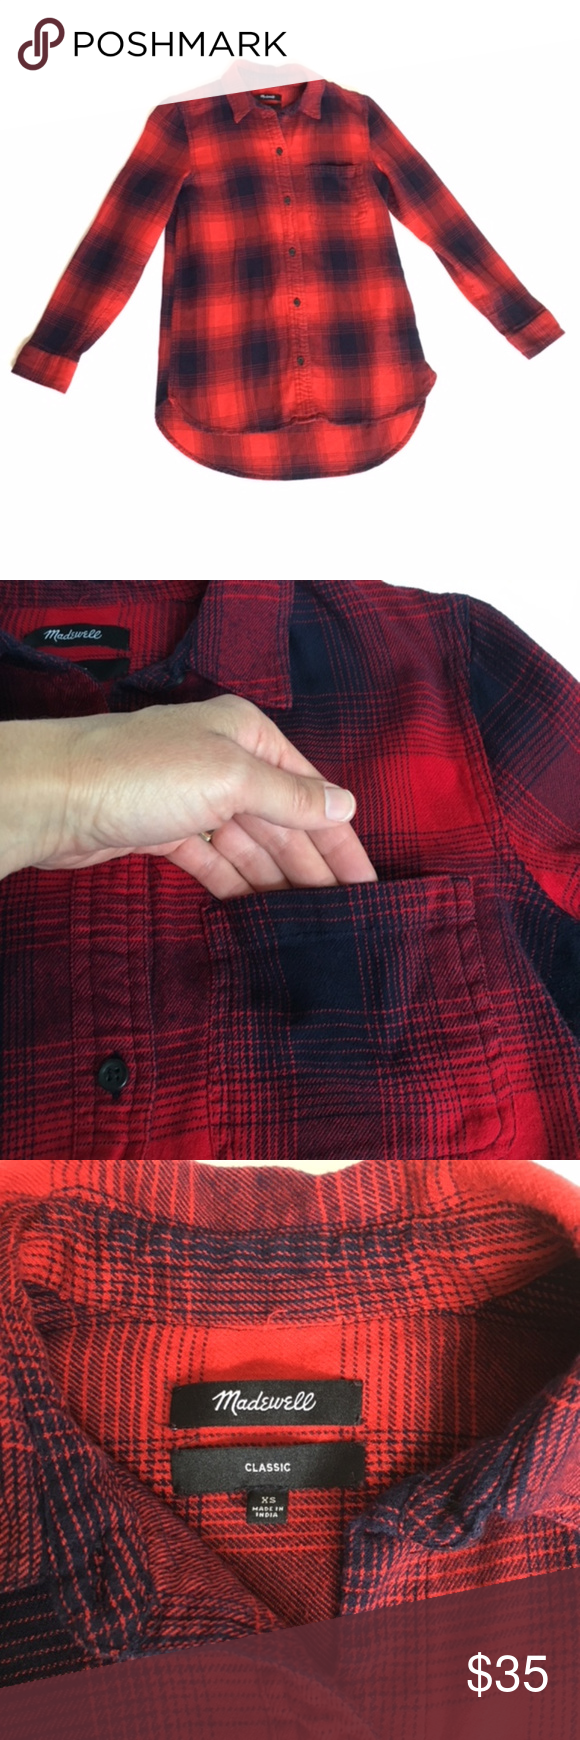 Navy blue flannel shirt womens  Madewell Red Navy Blue Plaid Flannel Shirt XS  Pinterest  Plaid